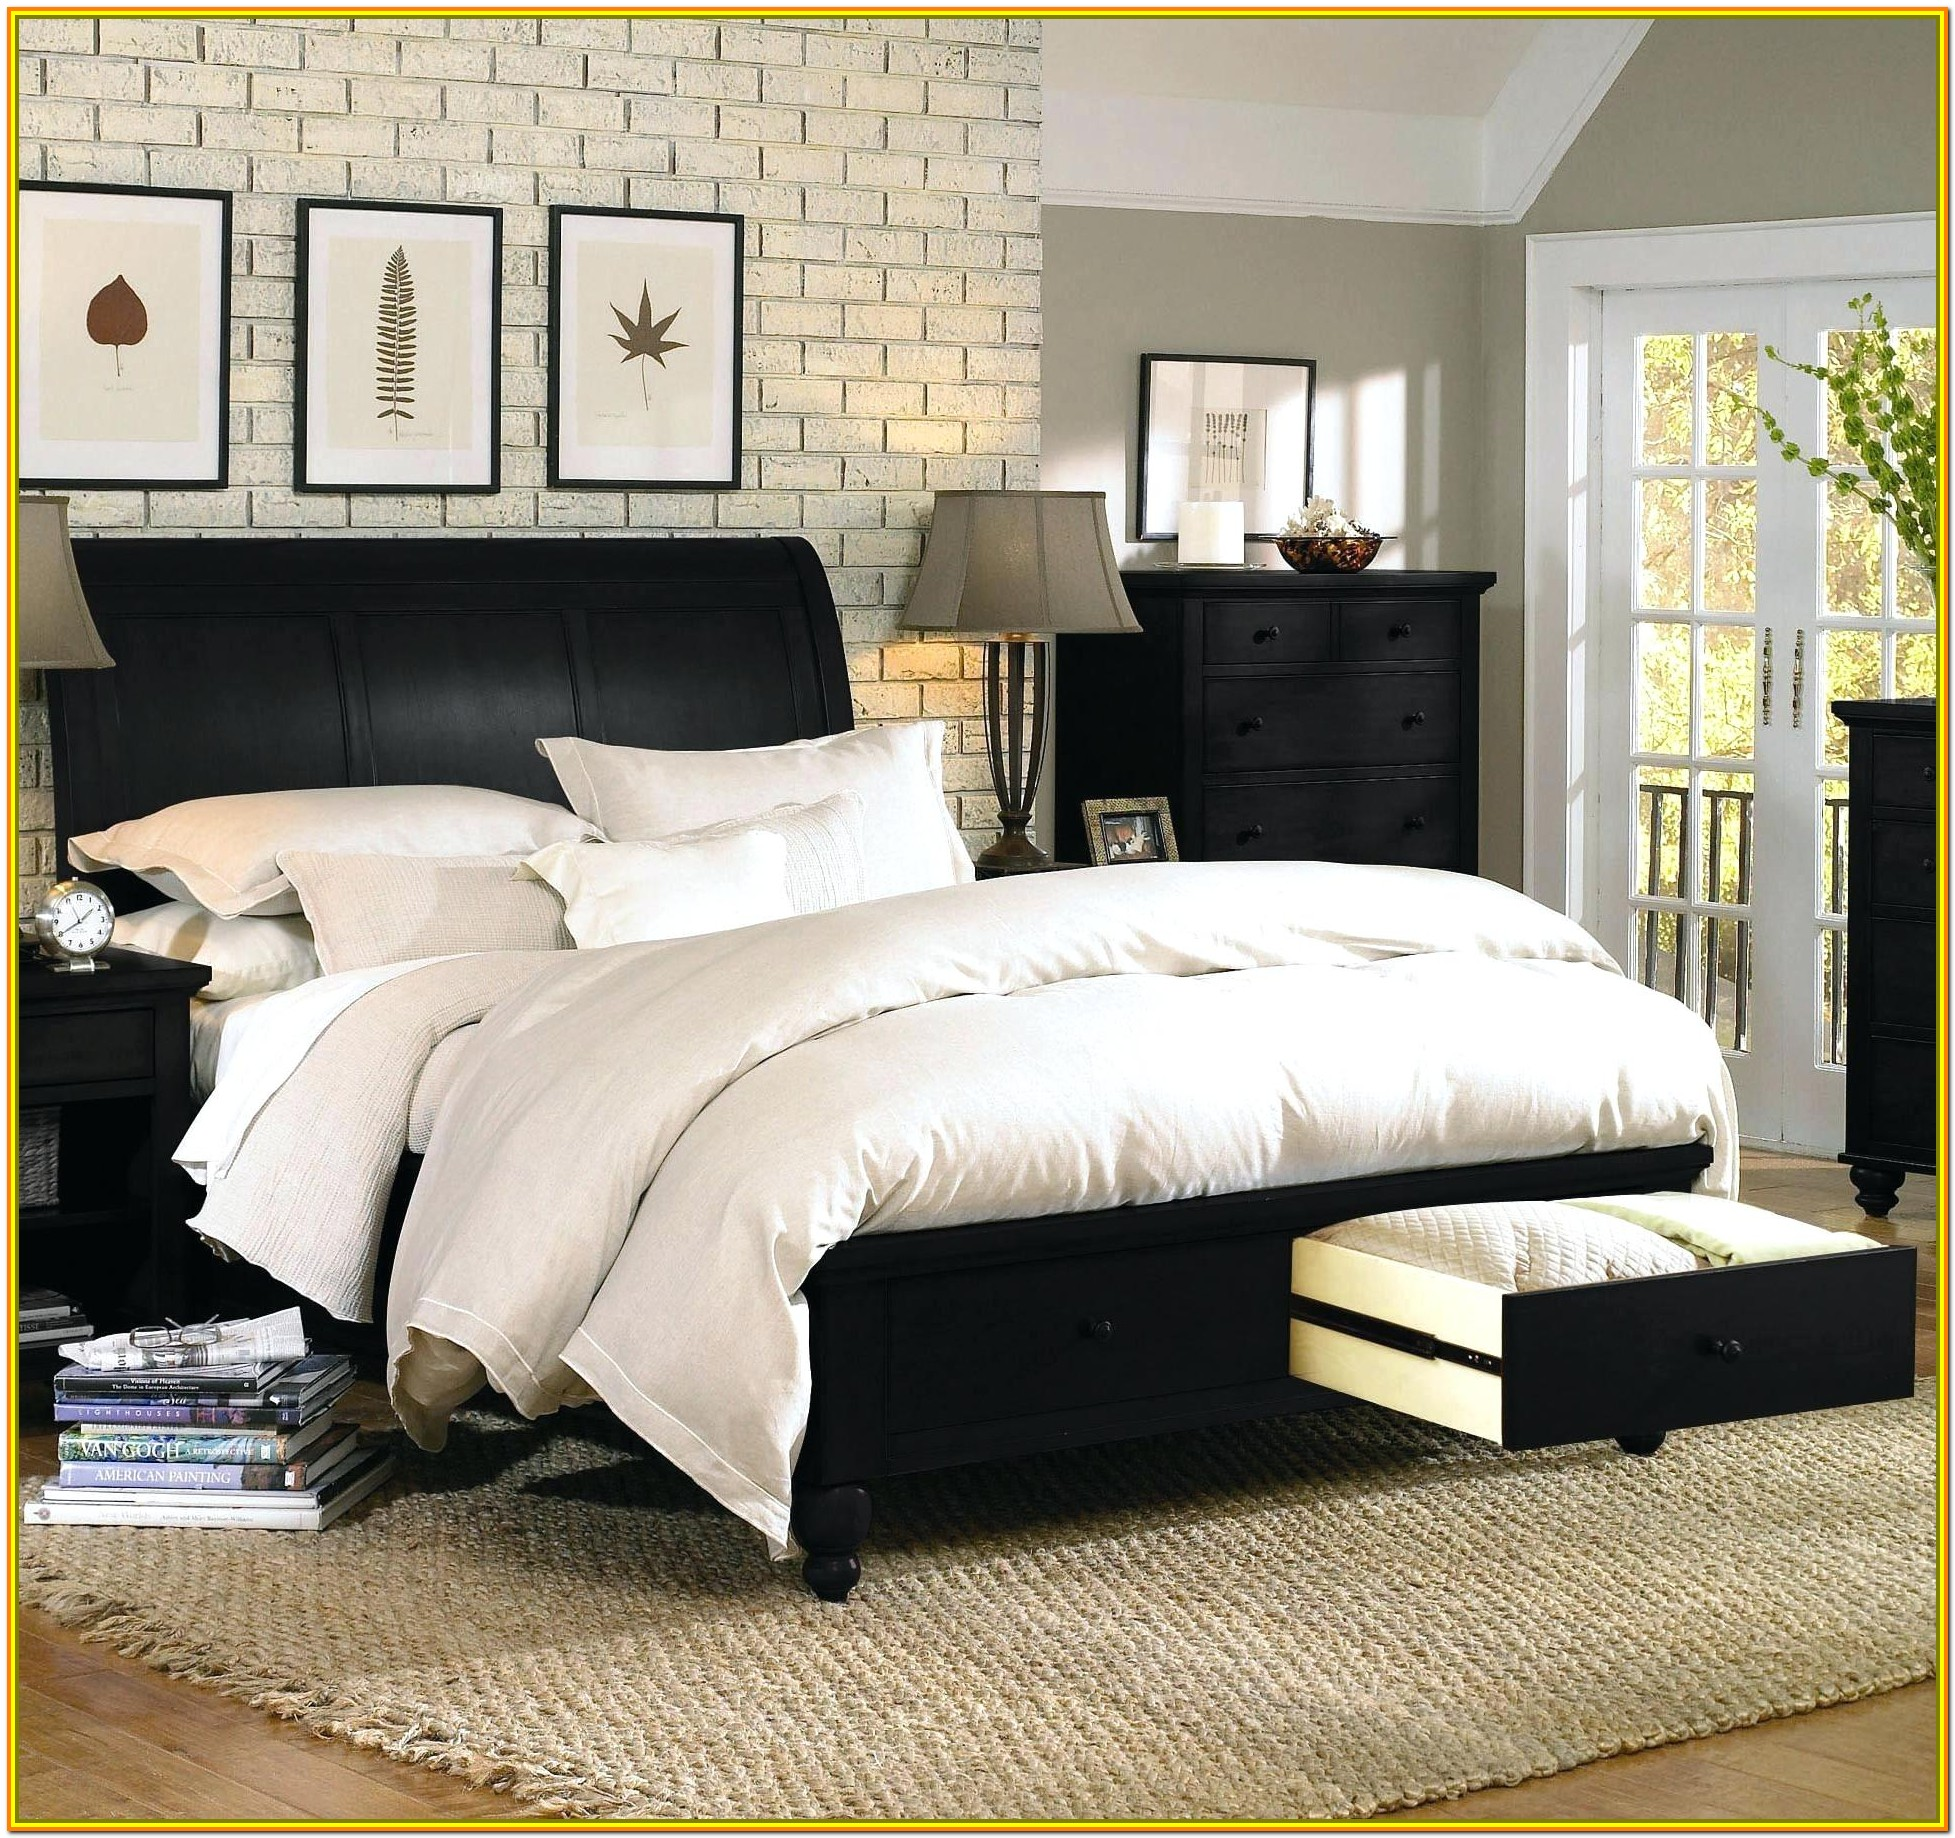 Super King Size Bed With Storage Drawers